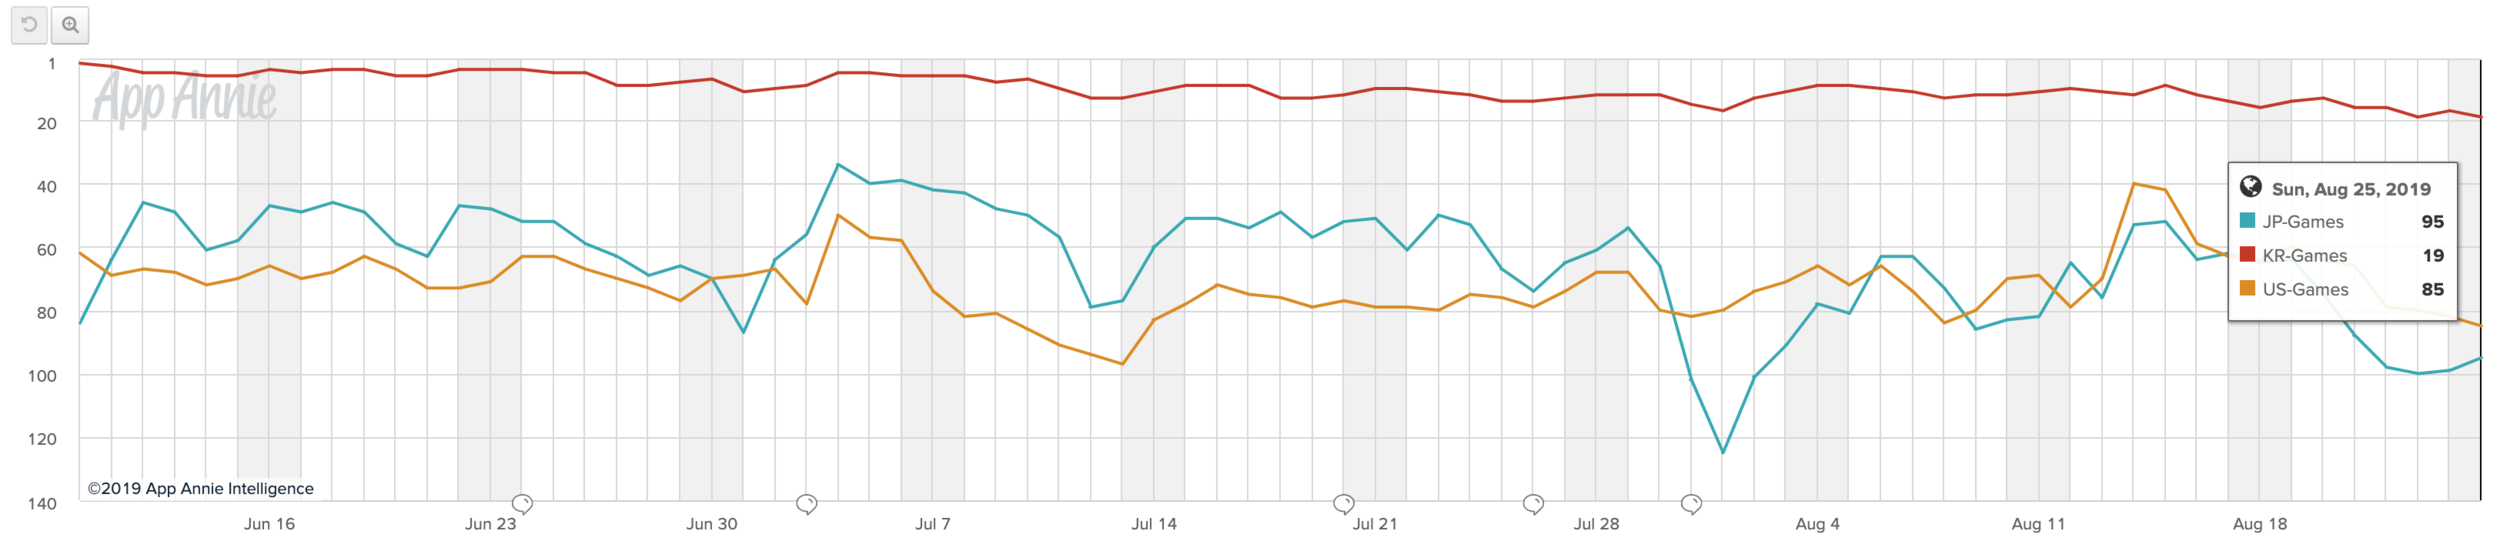 Archero's downward trend of top grossing rank across key East and West markets